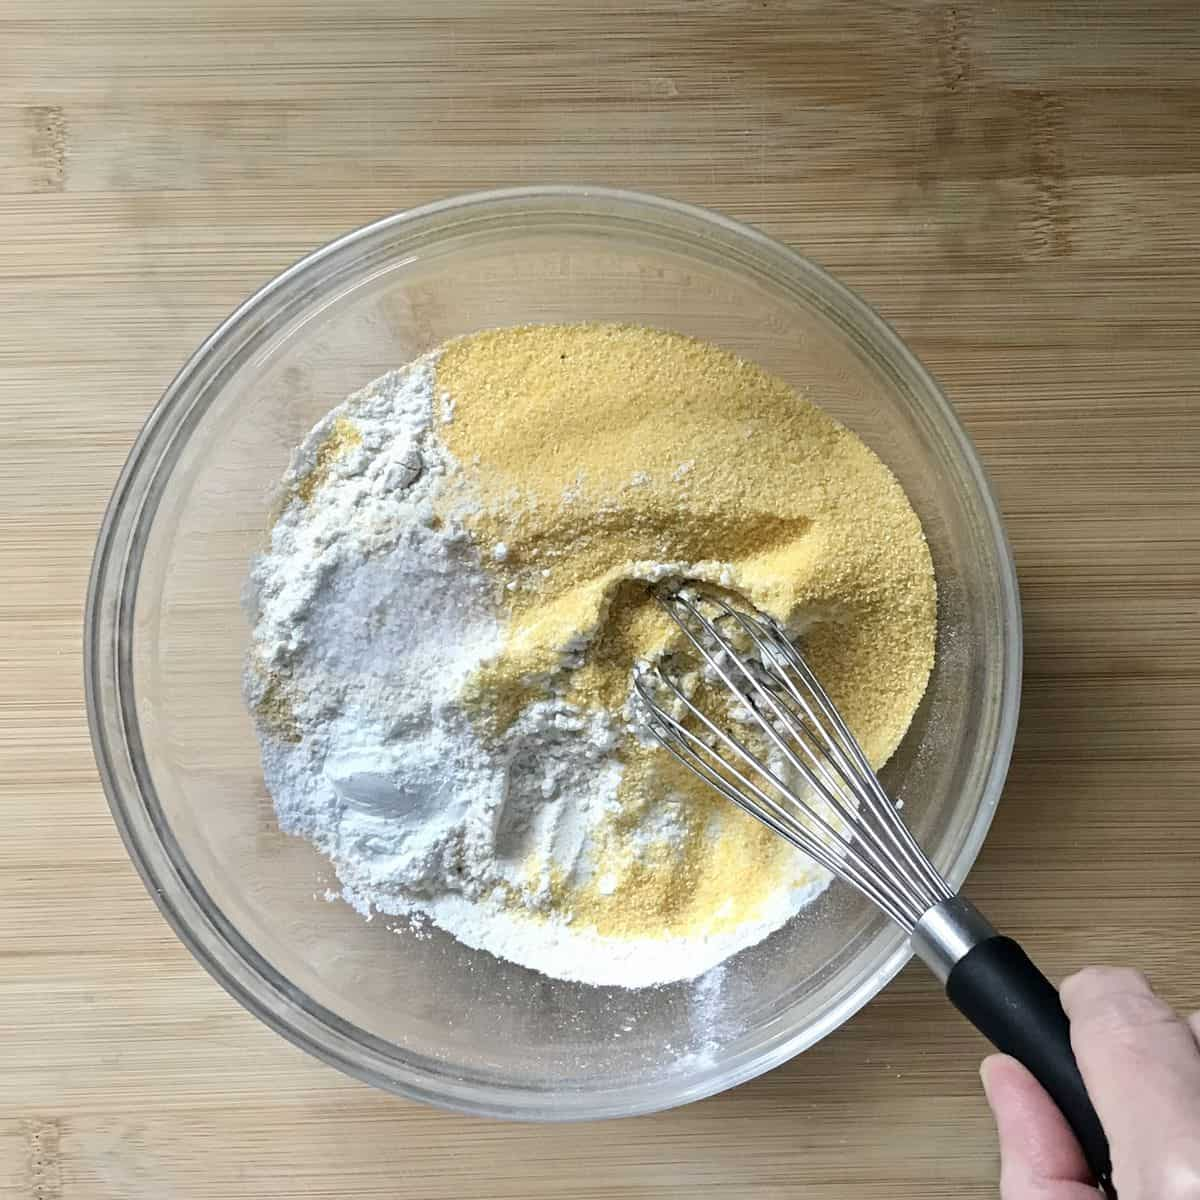 Dry ingredients being whisked together in a bowl.